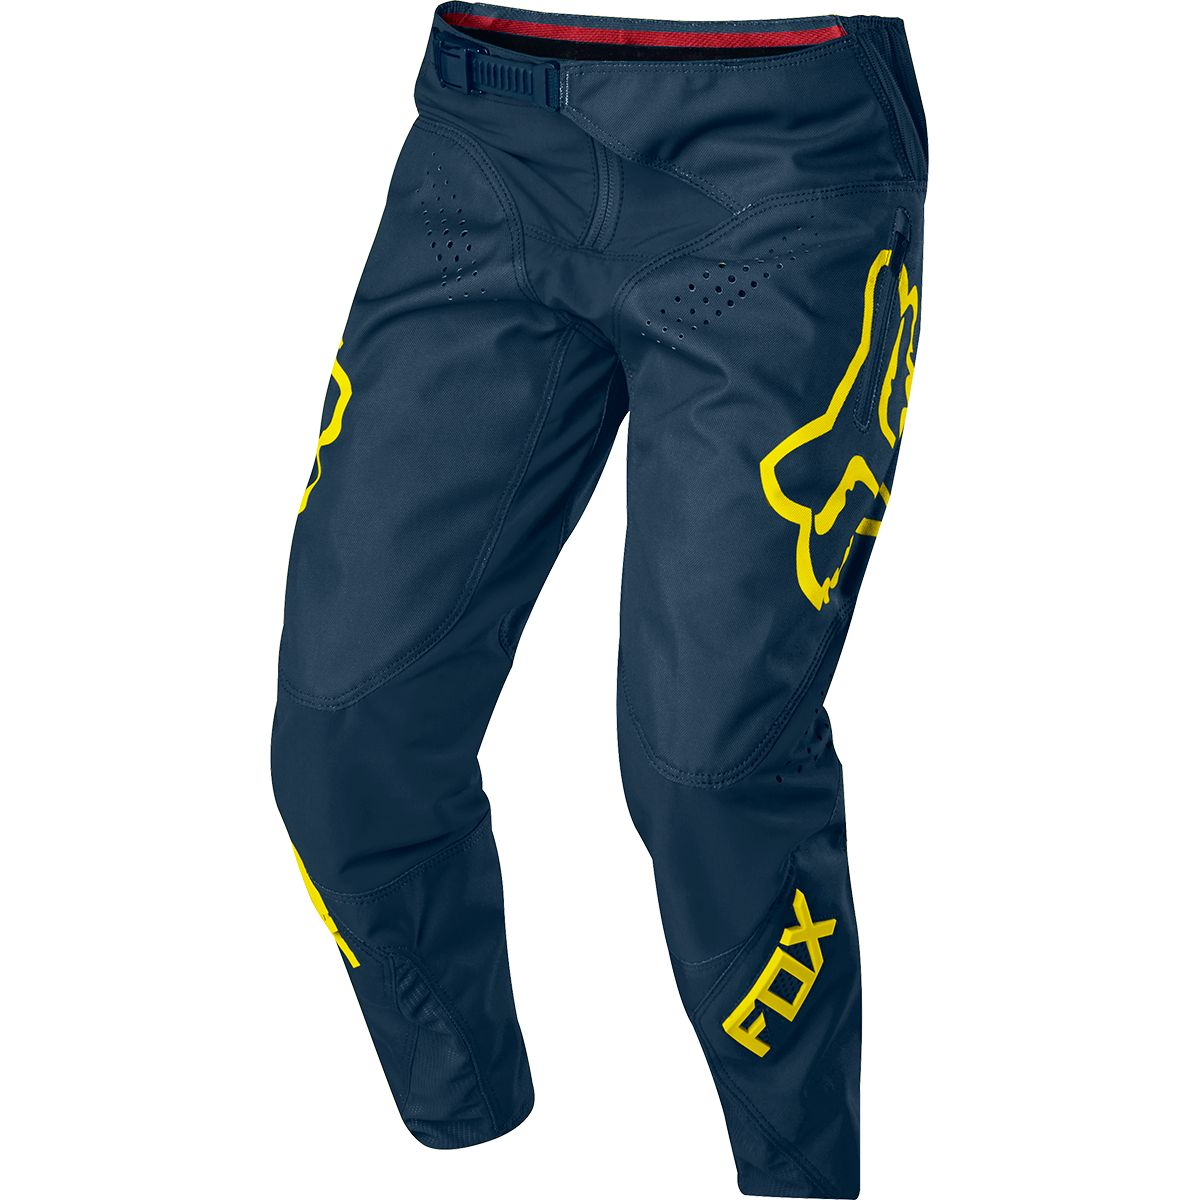 YOUTH DEMO PANTS for kids